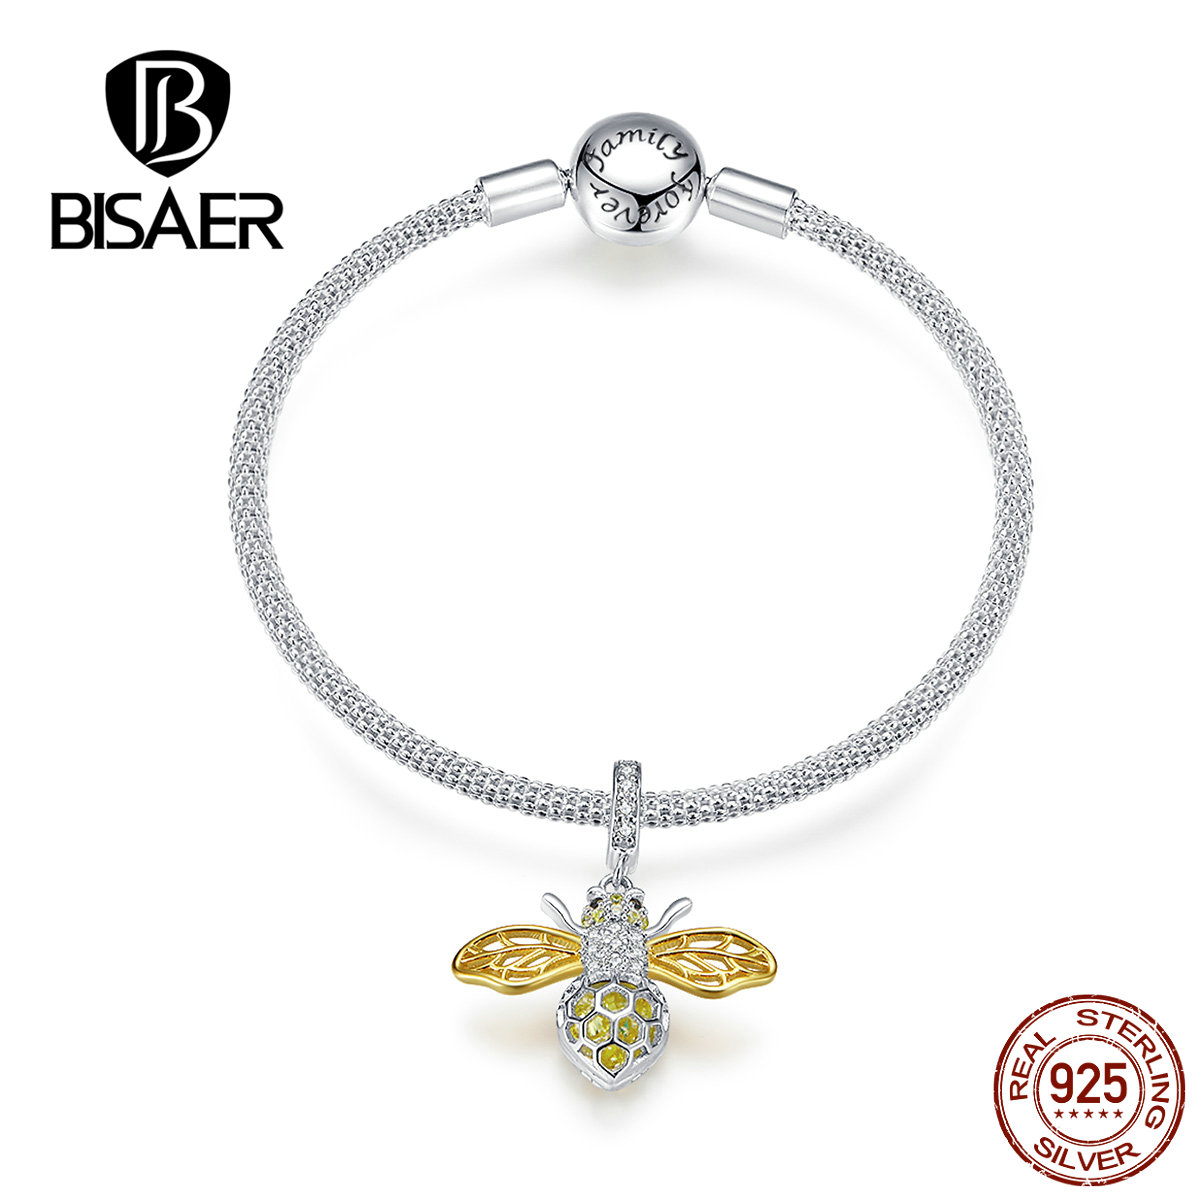 Bee Bracelets BISAER 925 Sterling Silver Insect Bee Snake Chain Silver Women Bracelets 17 19cm Sterling Silver Jewelry ECB830